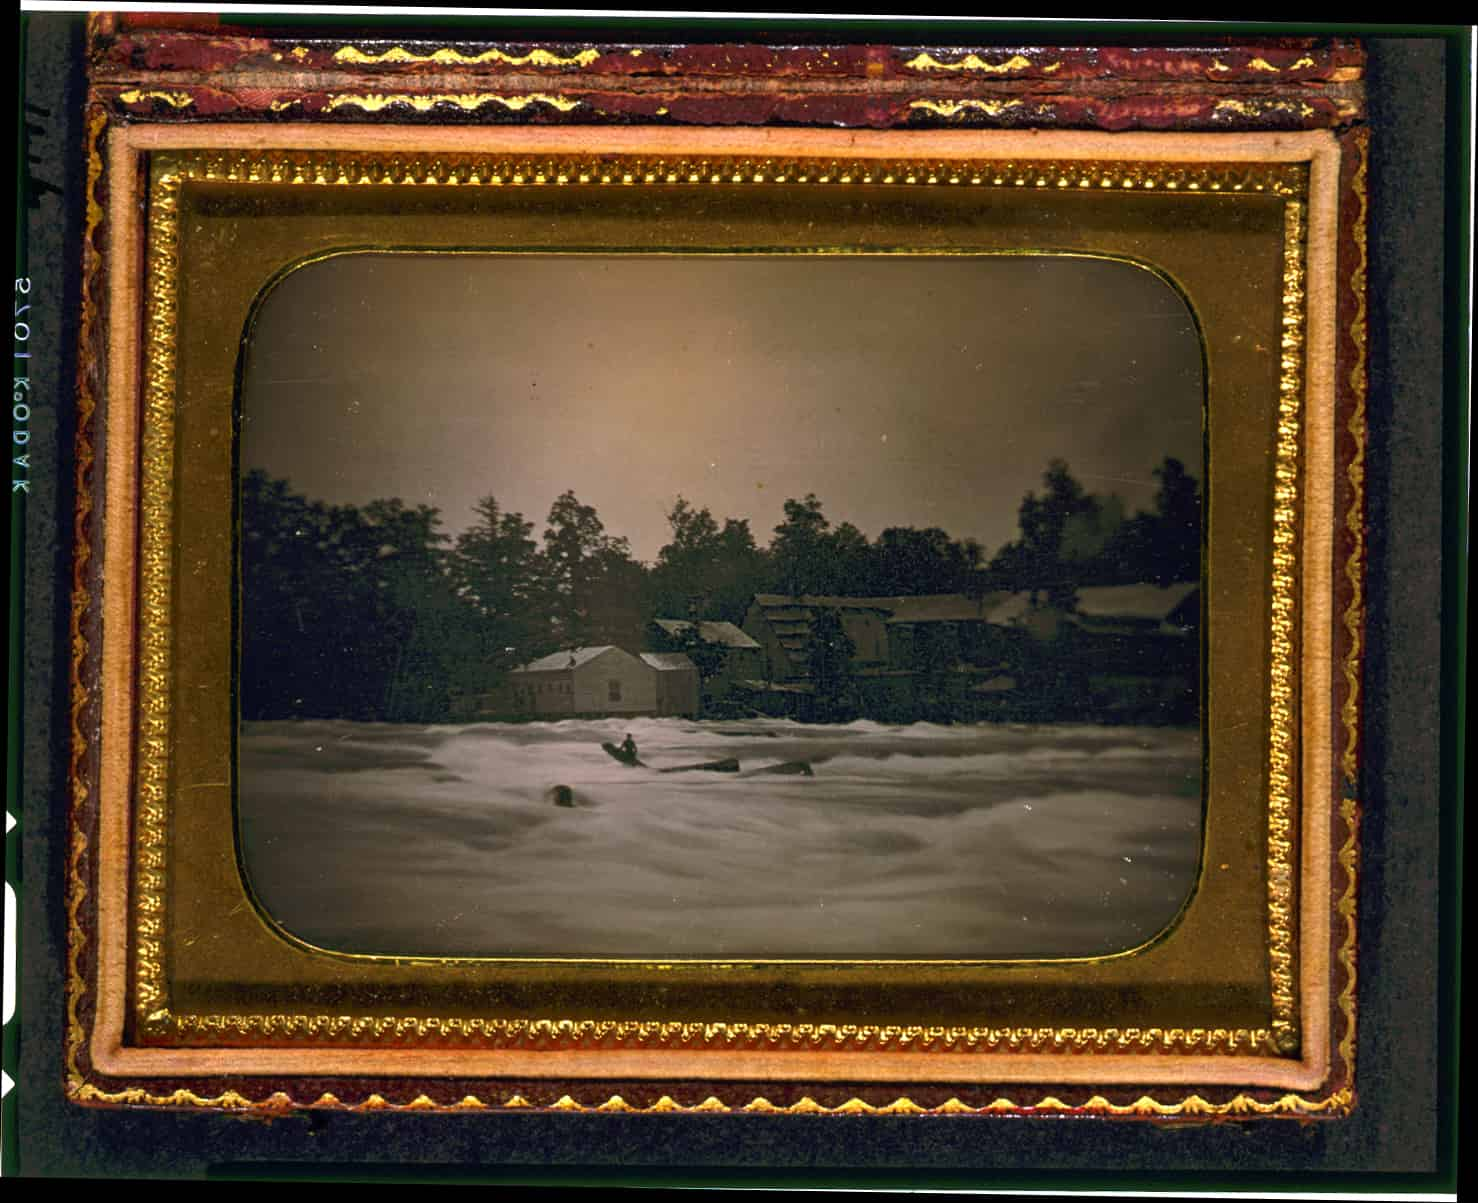 Joseph Avery stranded on rocks in the Niagara River. Three men boating in the Niagara River were overwhelmed by the river's strong current, lost control of their boat, and crashed into a rock. The current carried two men immediately over the Falls to their deaths. The daguerreotype shows the third man, stranded on a log which had jammed between two rocks. He weathered the current for eighteen hours before succumbing to the river. The image is an early example of a news photograph. Platt D. Babbitt, 1853